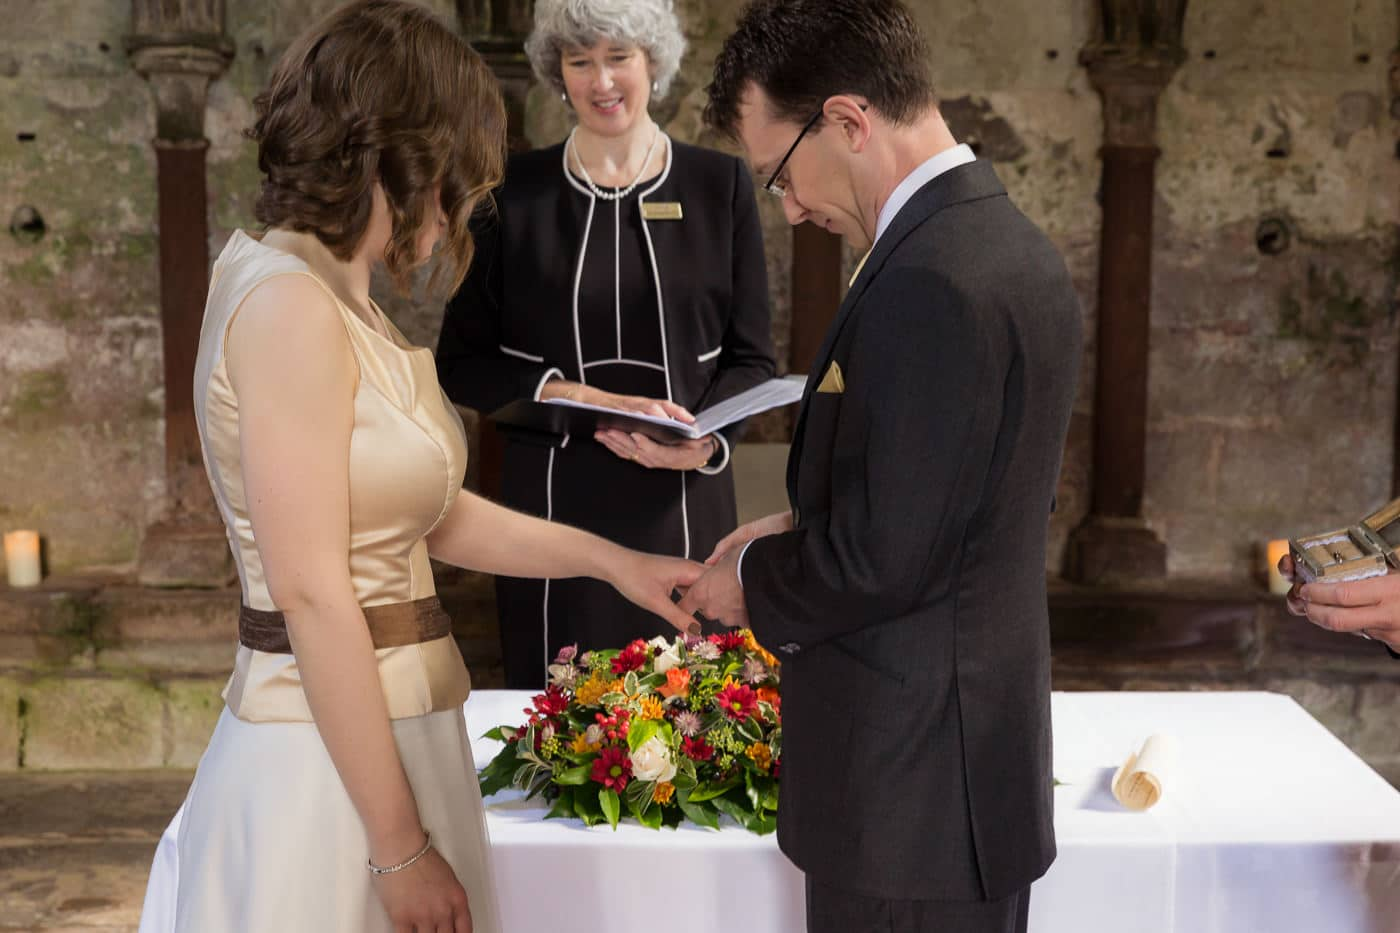 The bridal couple are exchanging rings